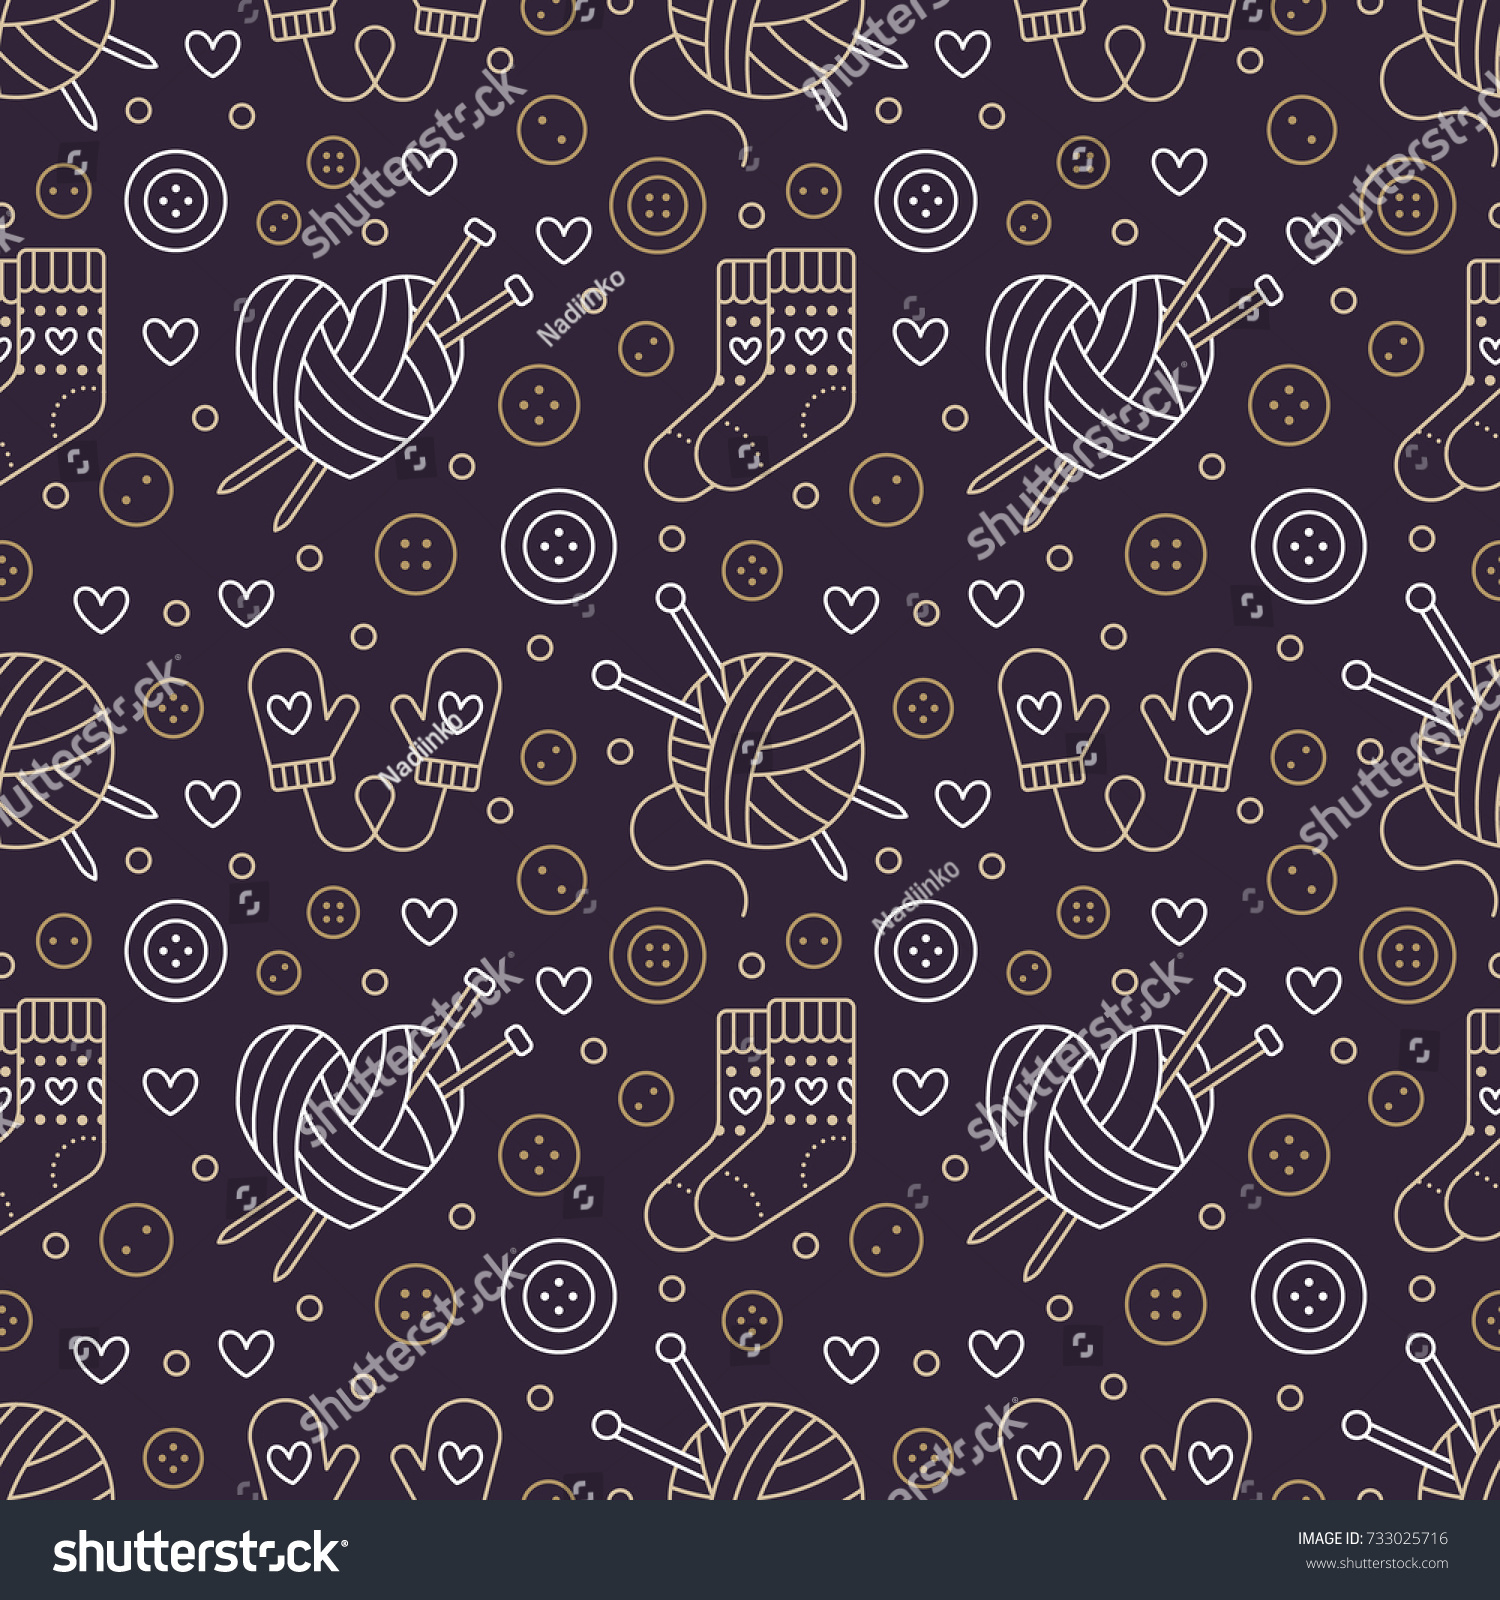 Knitting Crochet Seamless Pattern Cute Vector Stock Vector Royalty Free 733025716